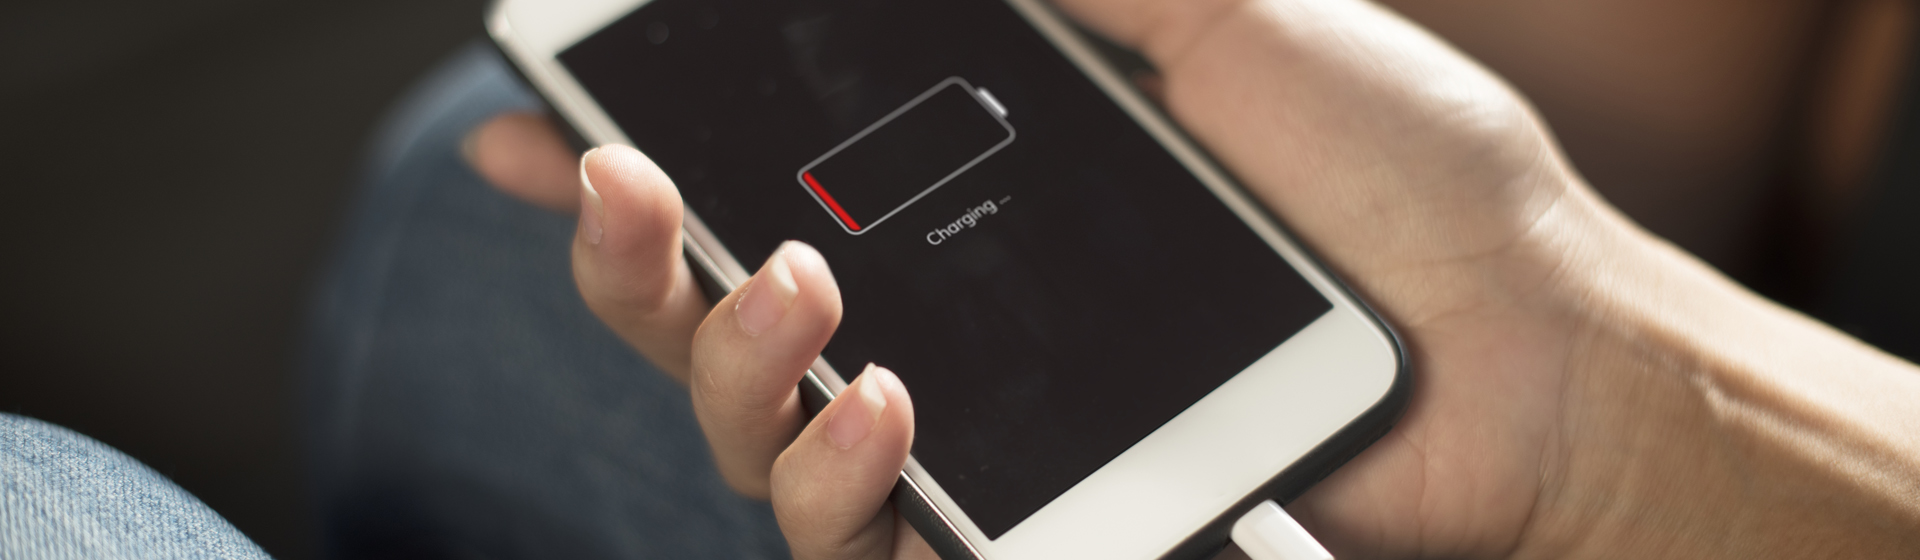 5 Ways to Make Your Phone Battery Last Longer